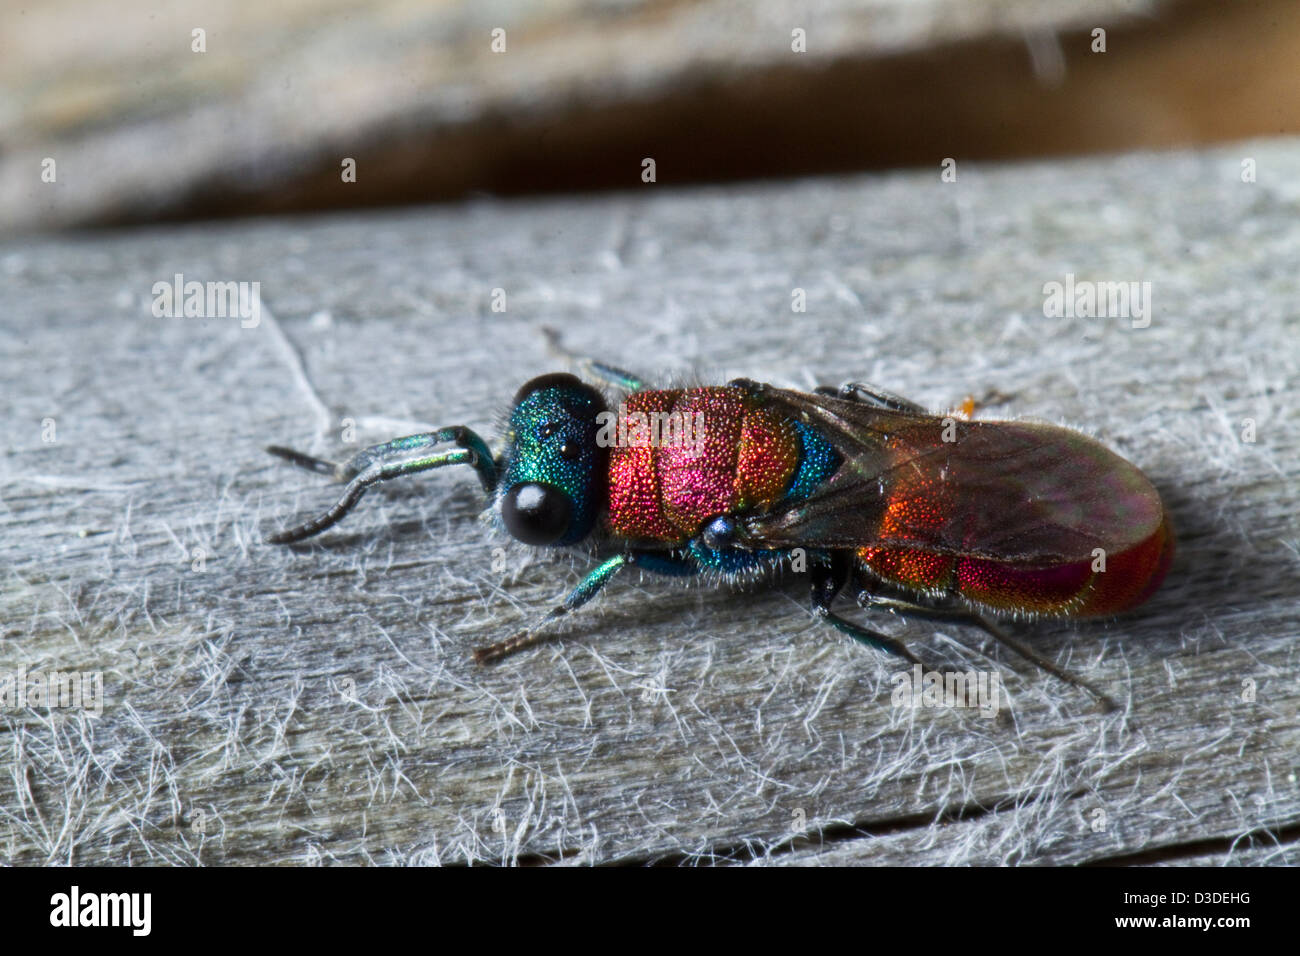 Close view detail of the beautiful Cuckoo Wasp (Chrysis lusitanica). - Stock Image